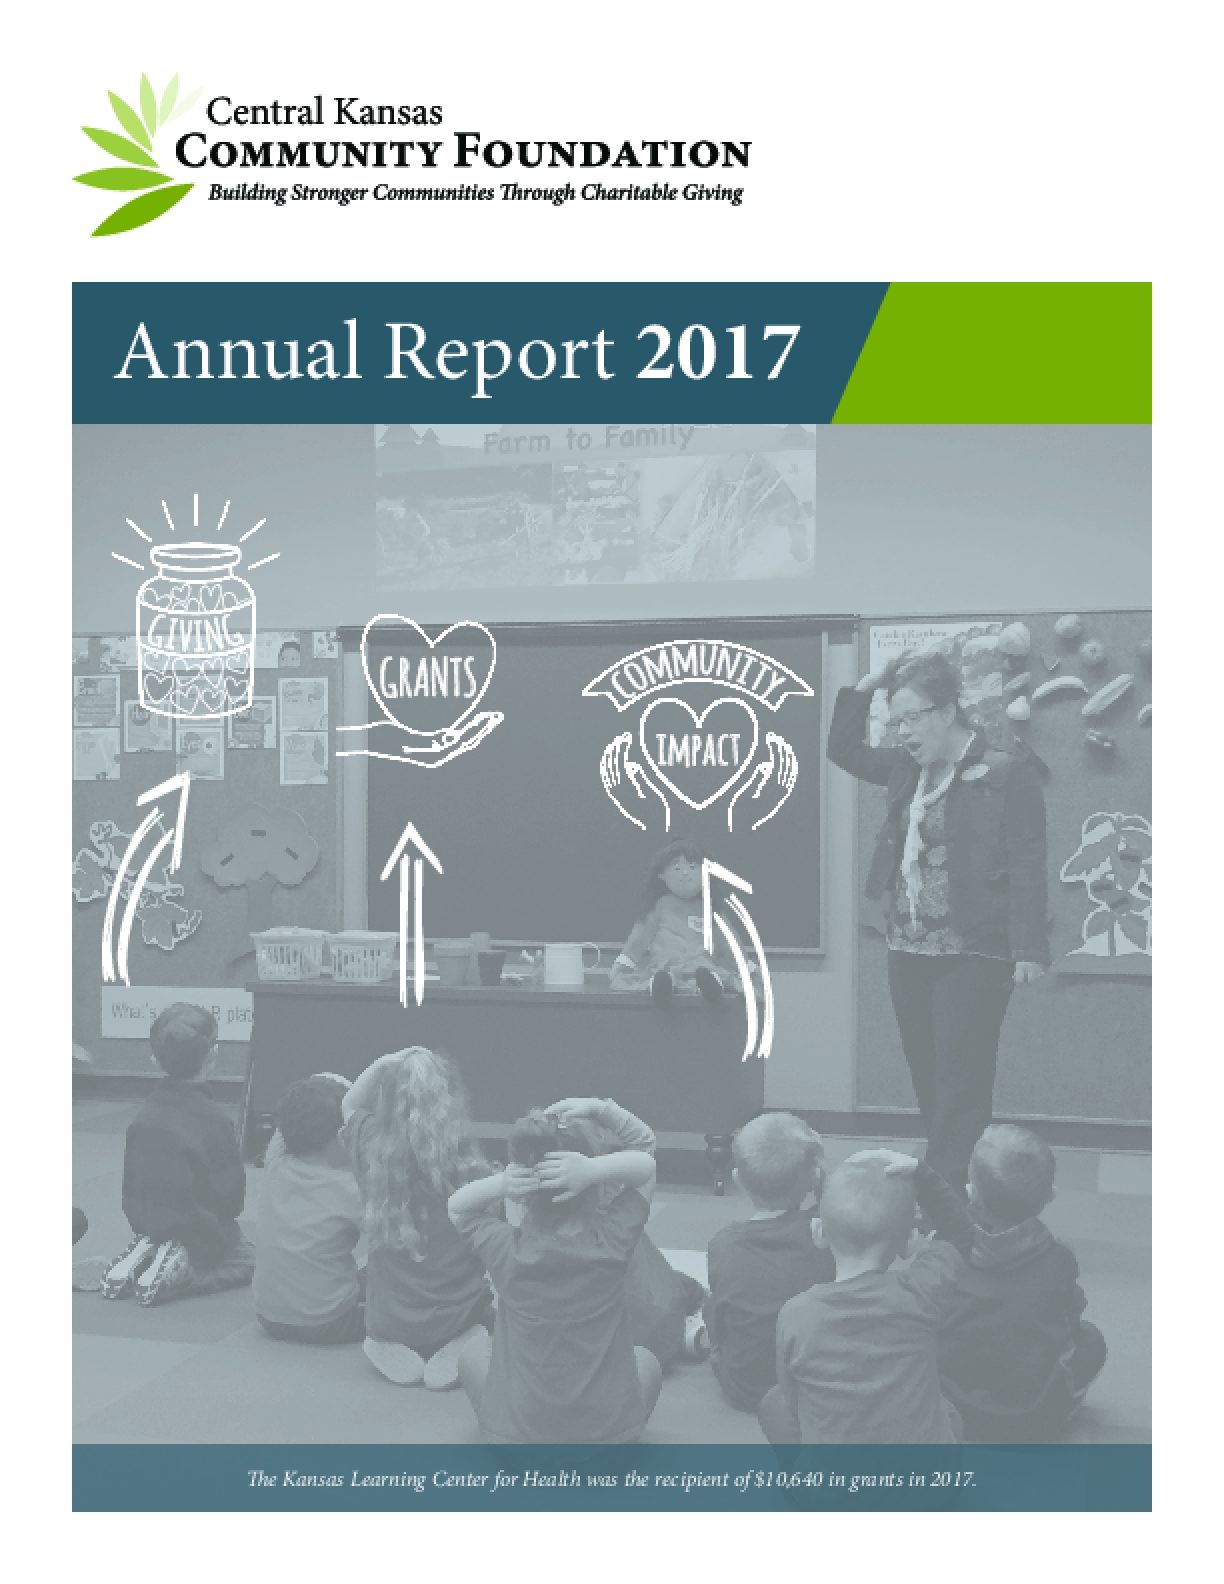 Central Kansas Community Foundation Annual Report 2017